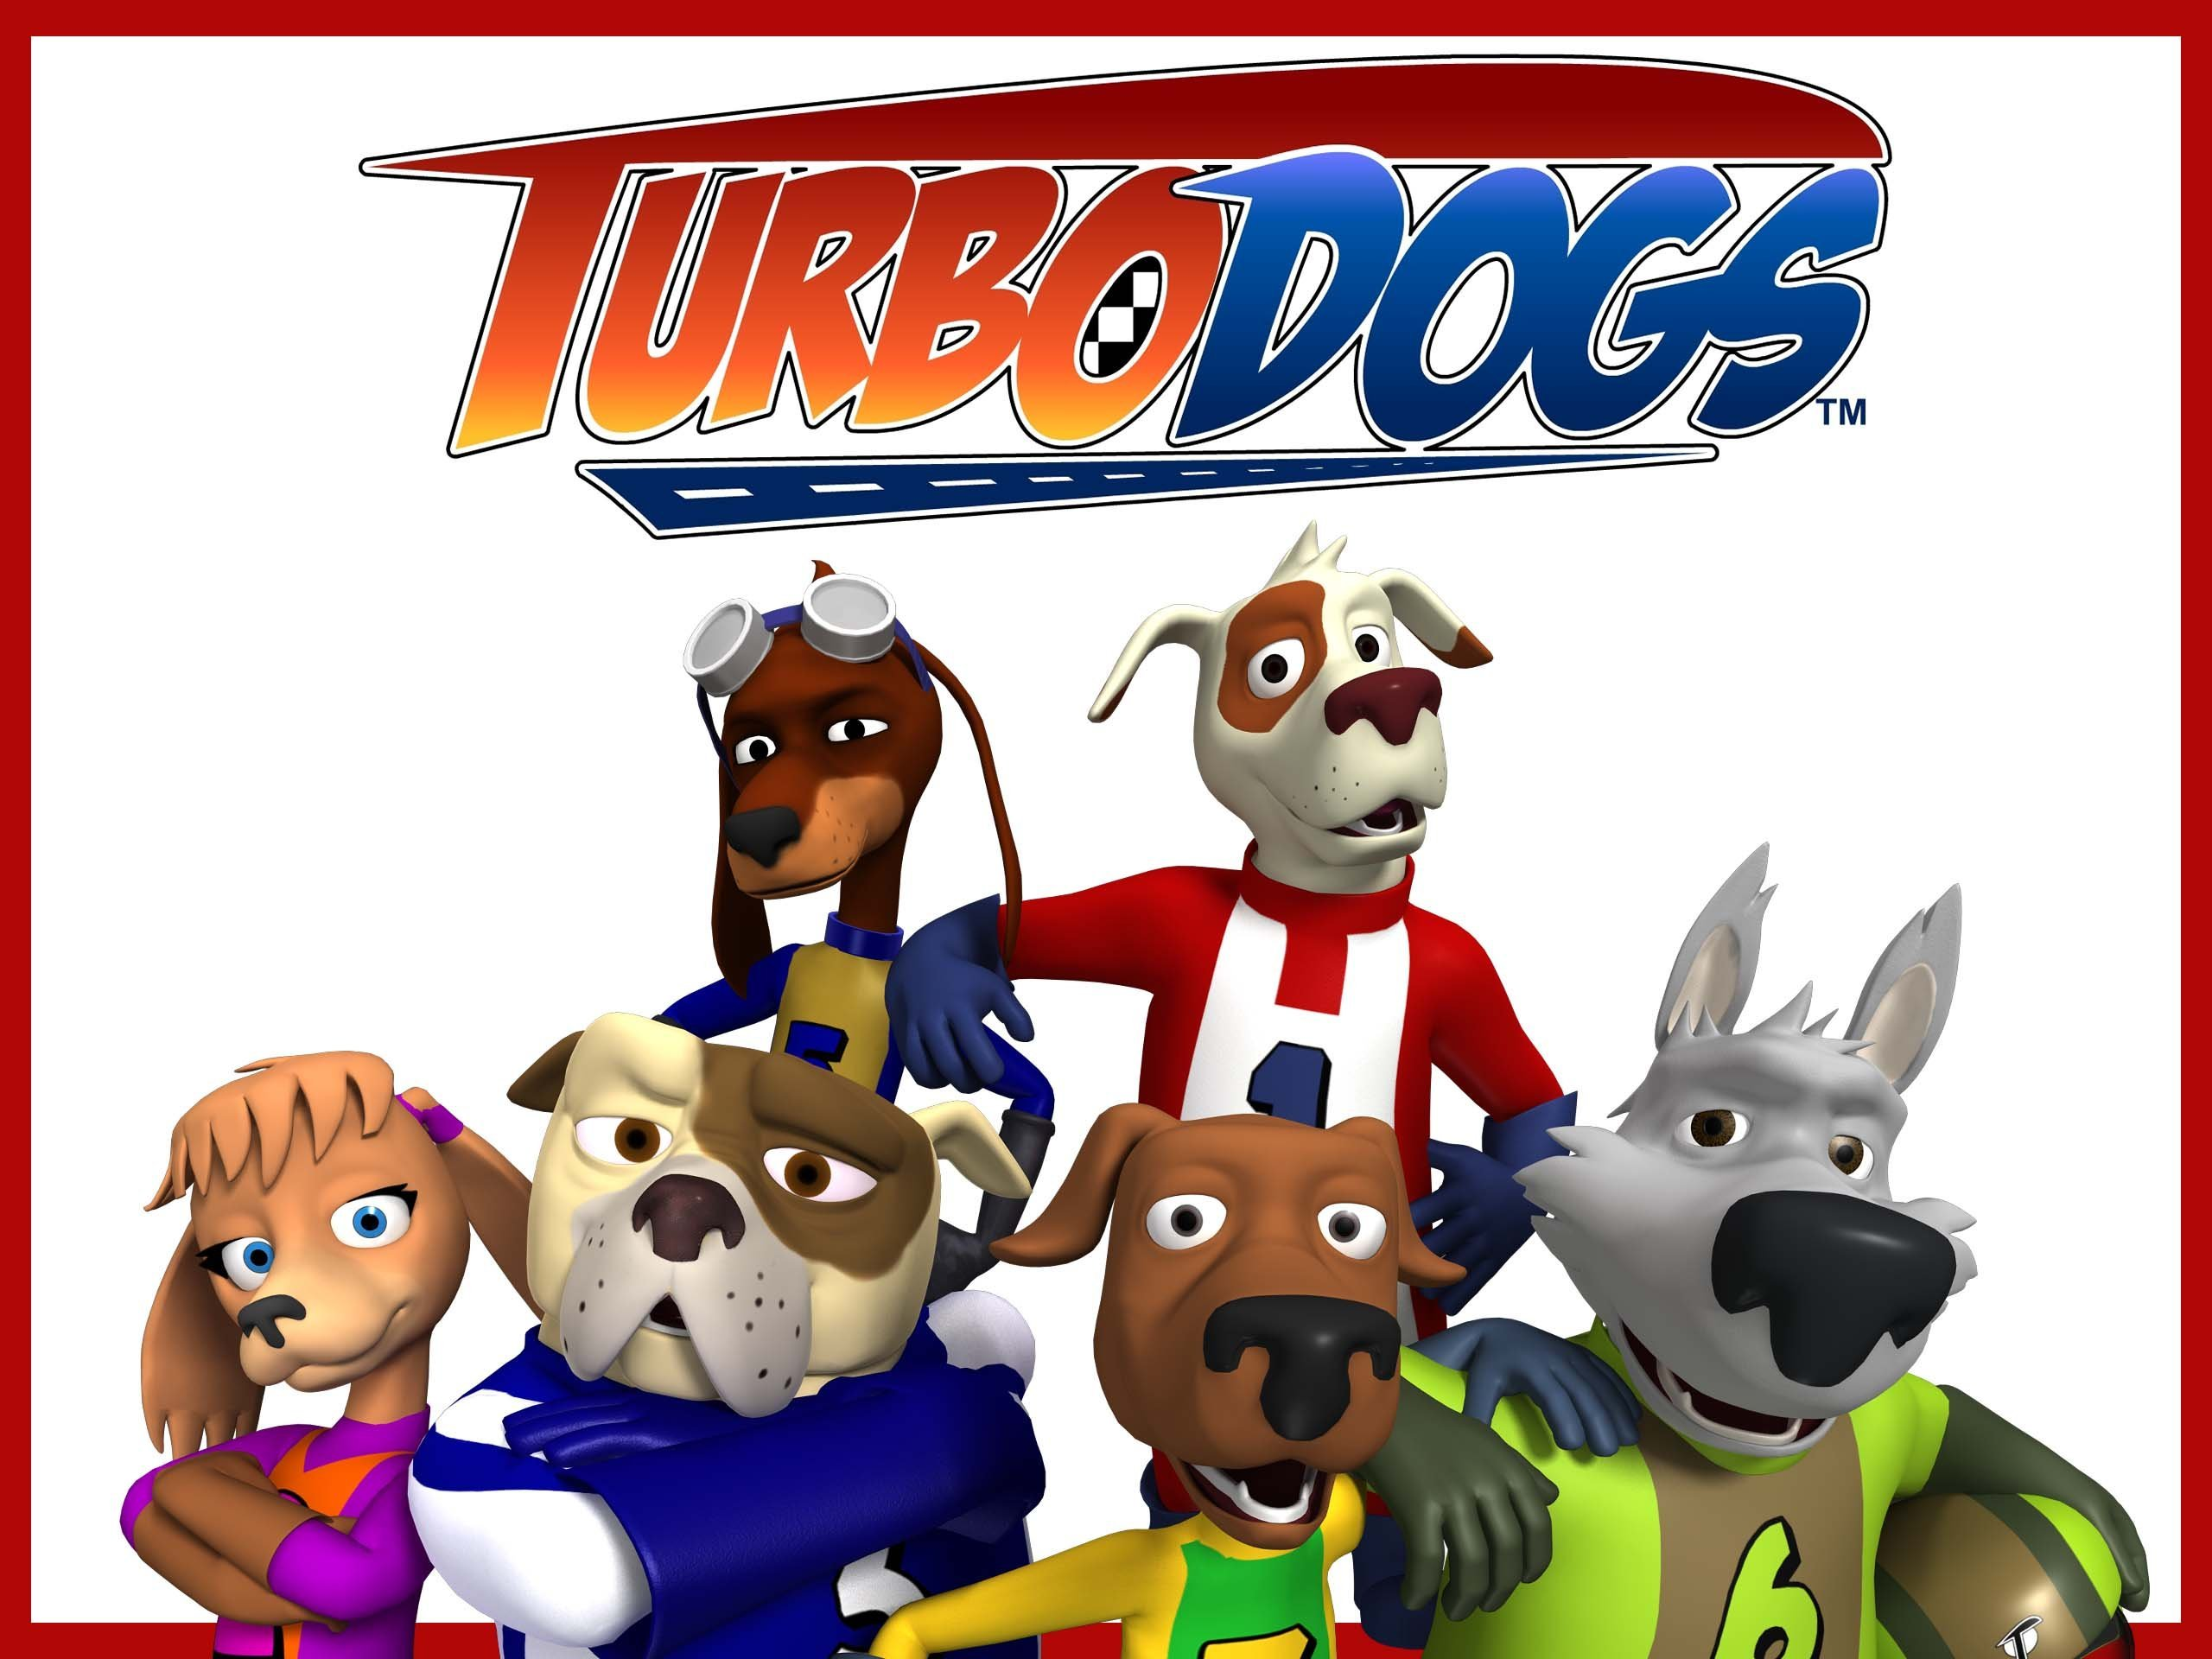 Amazon.com: Turbo Dogs Volume 1: Lyon Smith, Dan Petronijevic, Stacey Depass, Joris Jarsky, Hadley Kay, Peter Cugno, Terry McGurrin, Ron Pardo, Bill Colgate ...